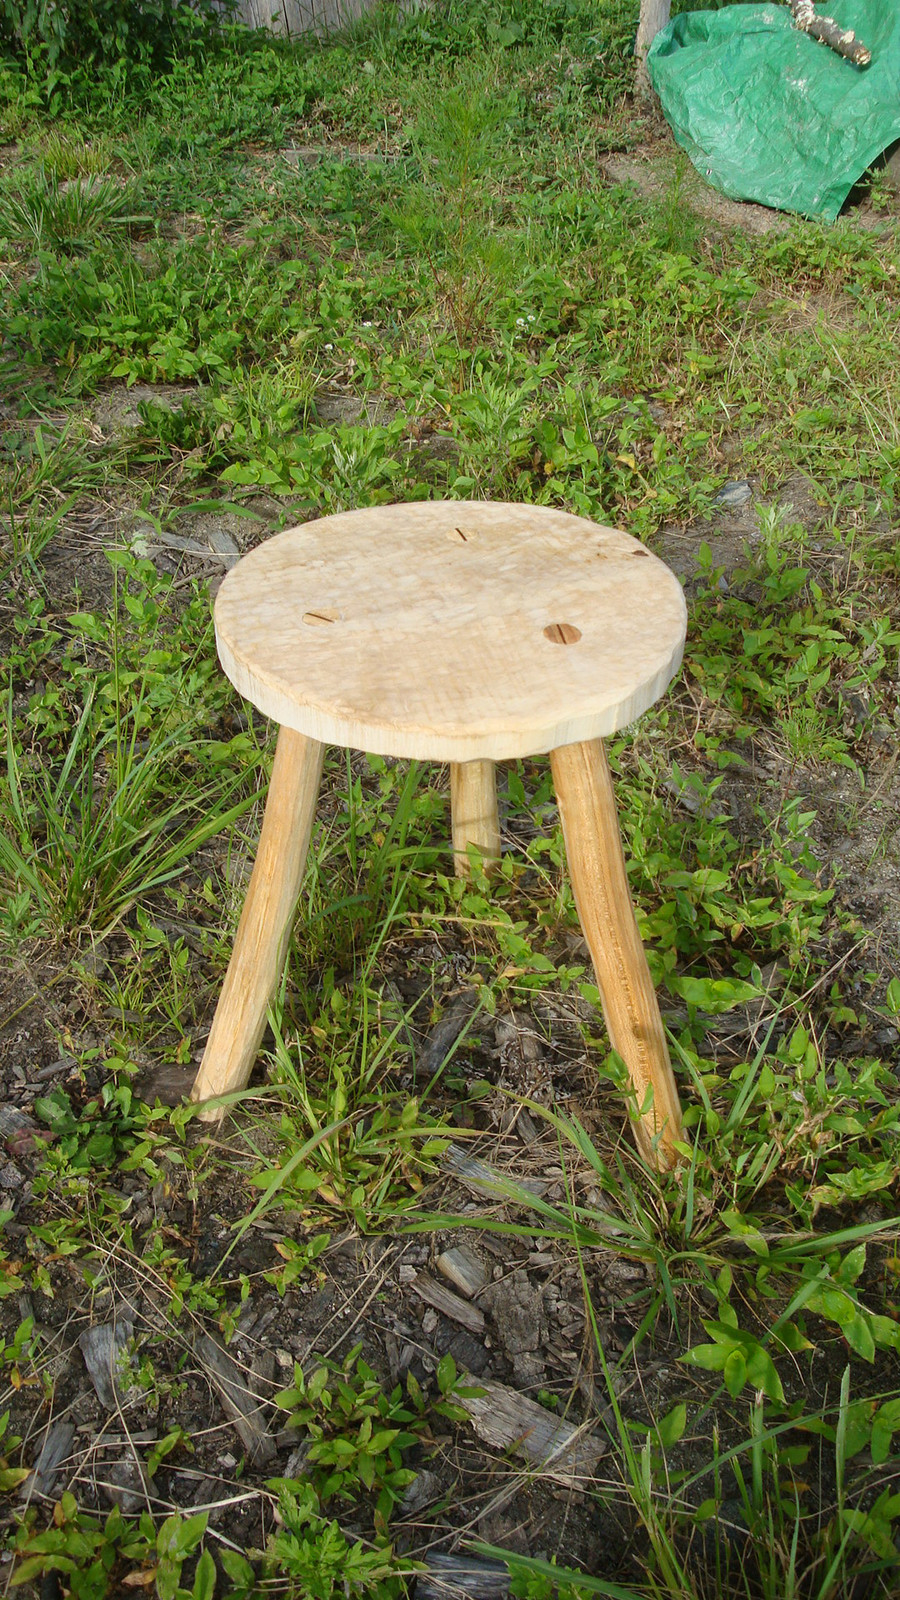 20160731nanaumi_2nd_stool_course_03